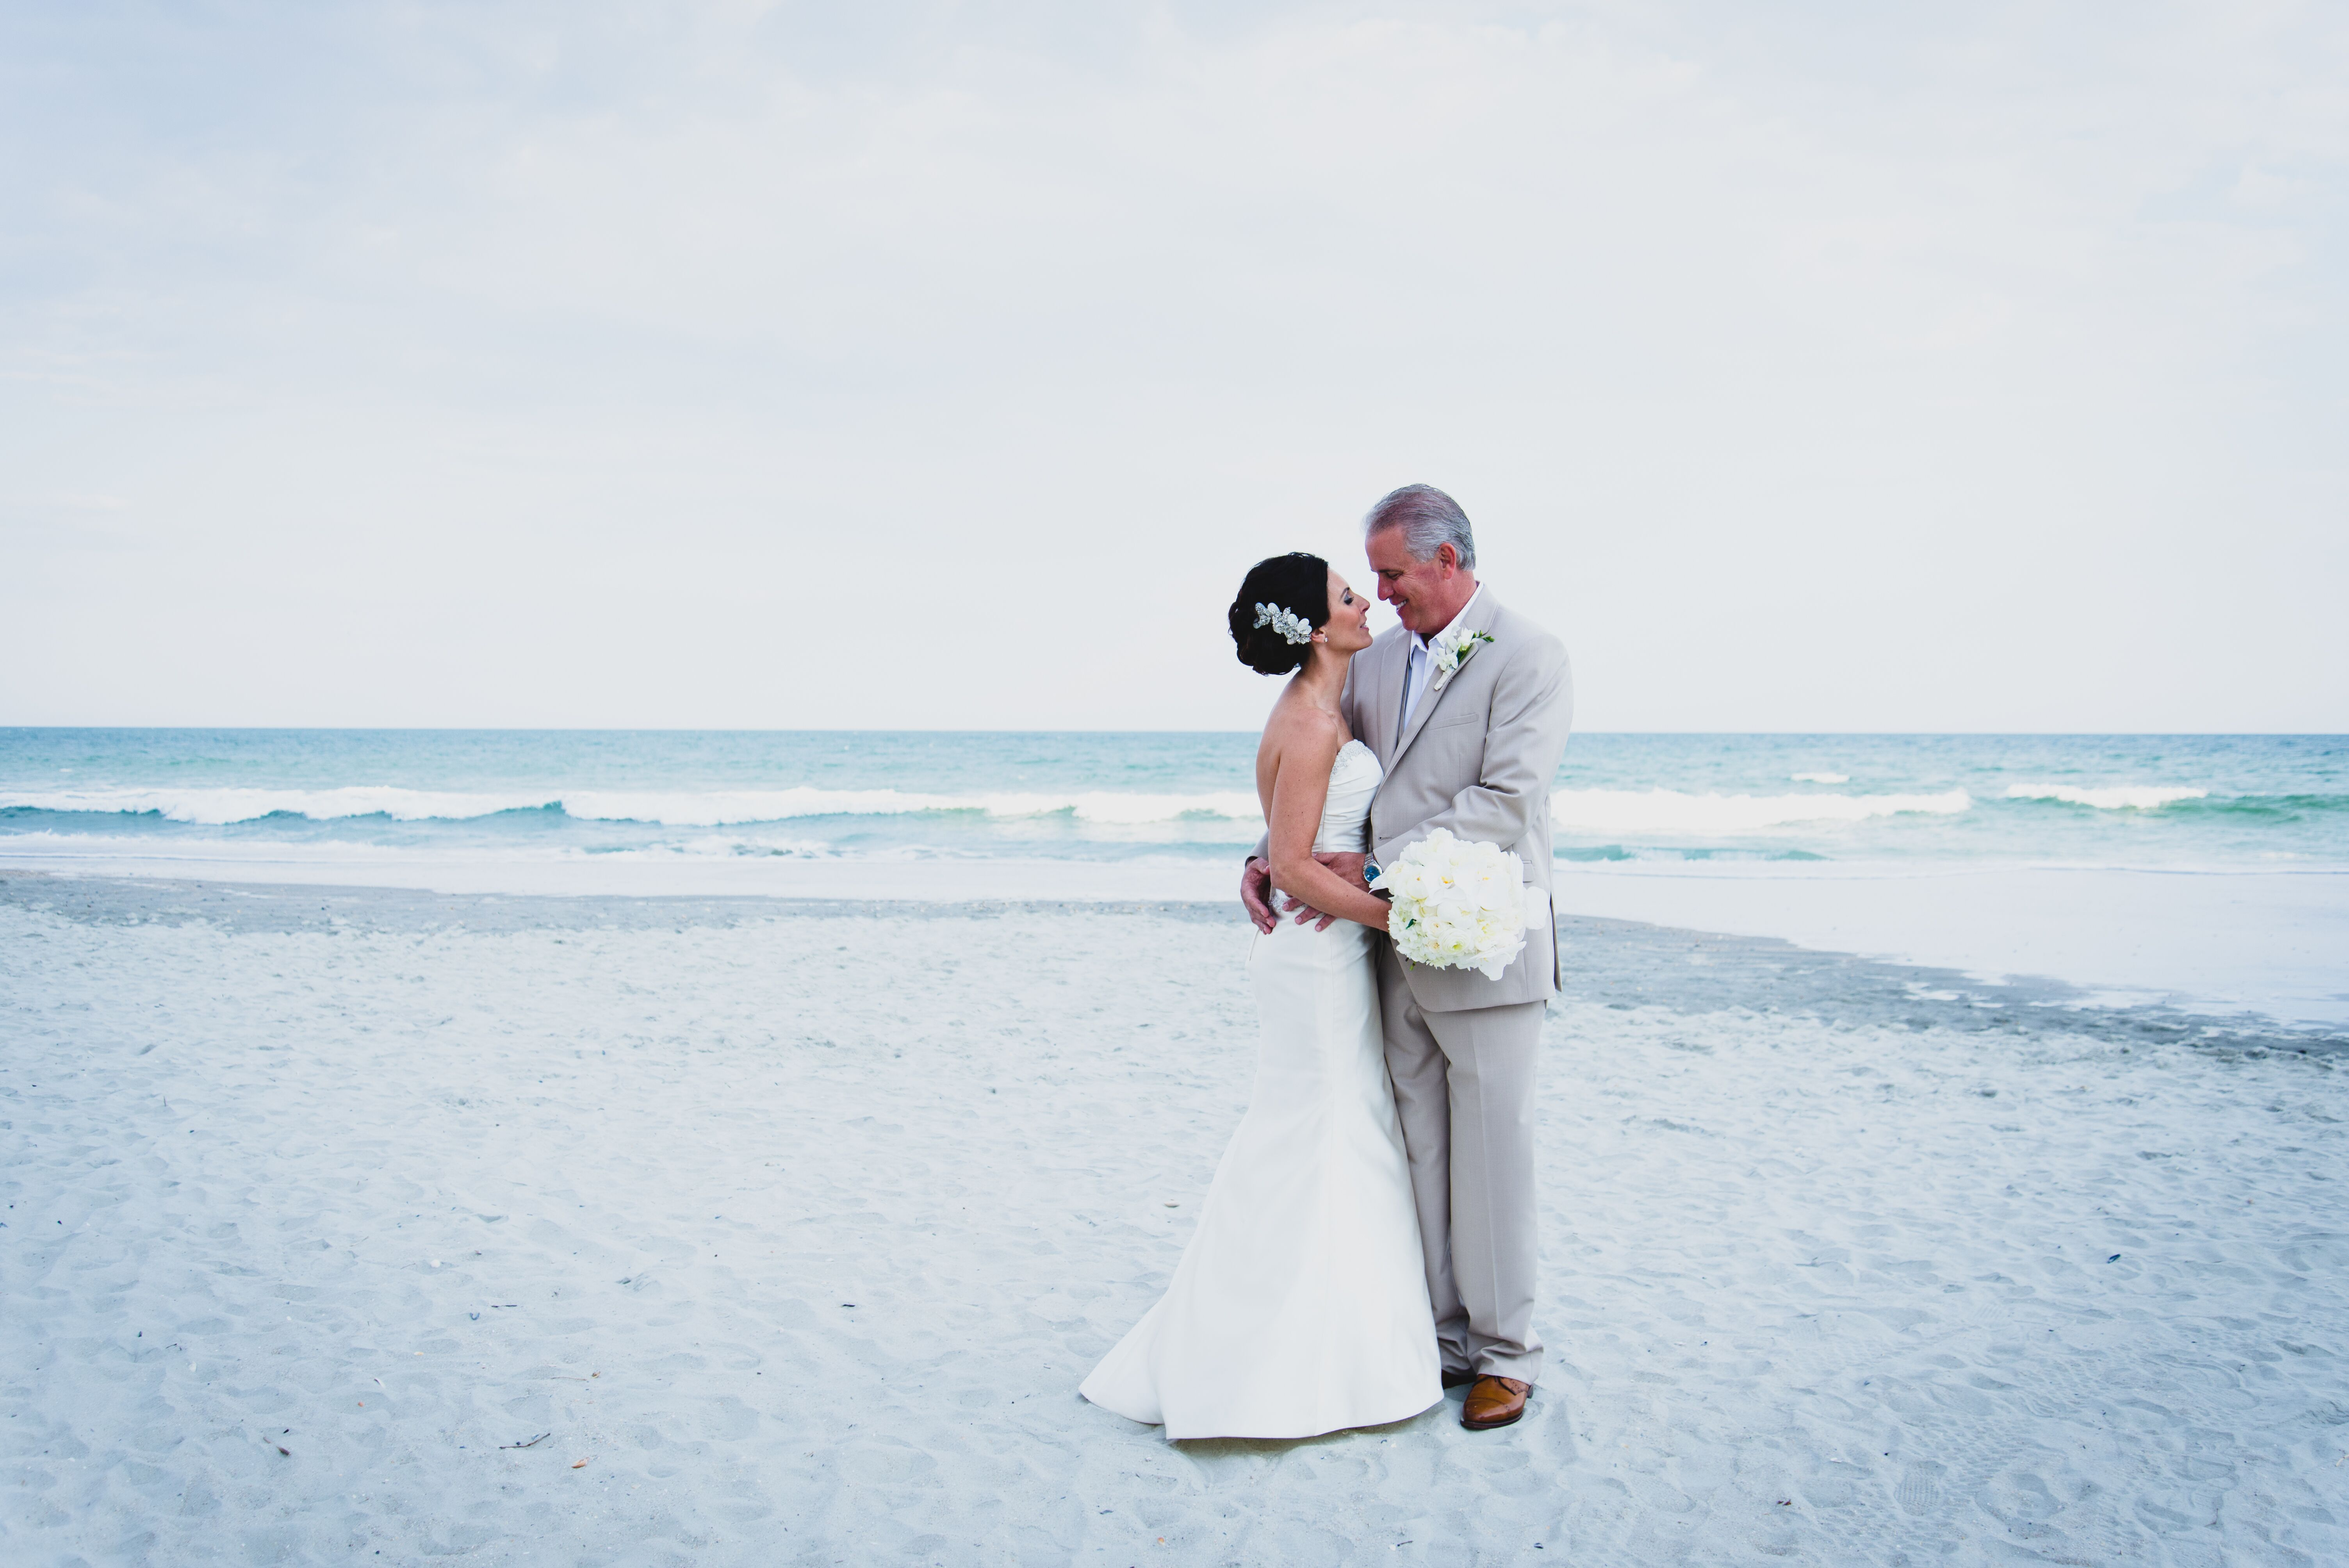 Wedding Reception Venues in Myrtle Beach, SC - The Knot